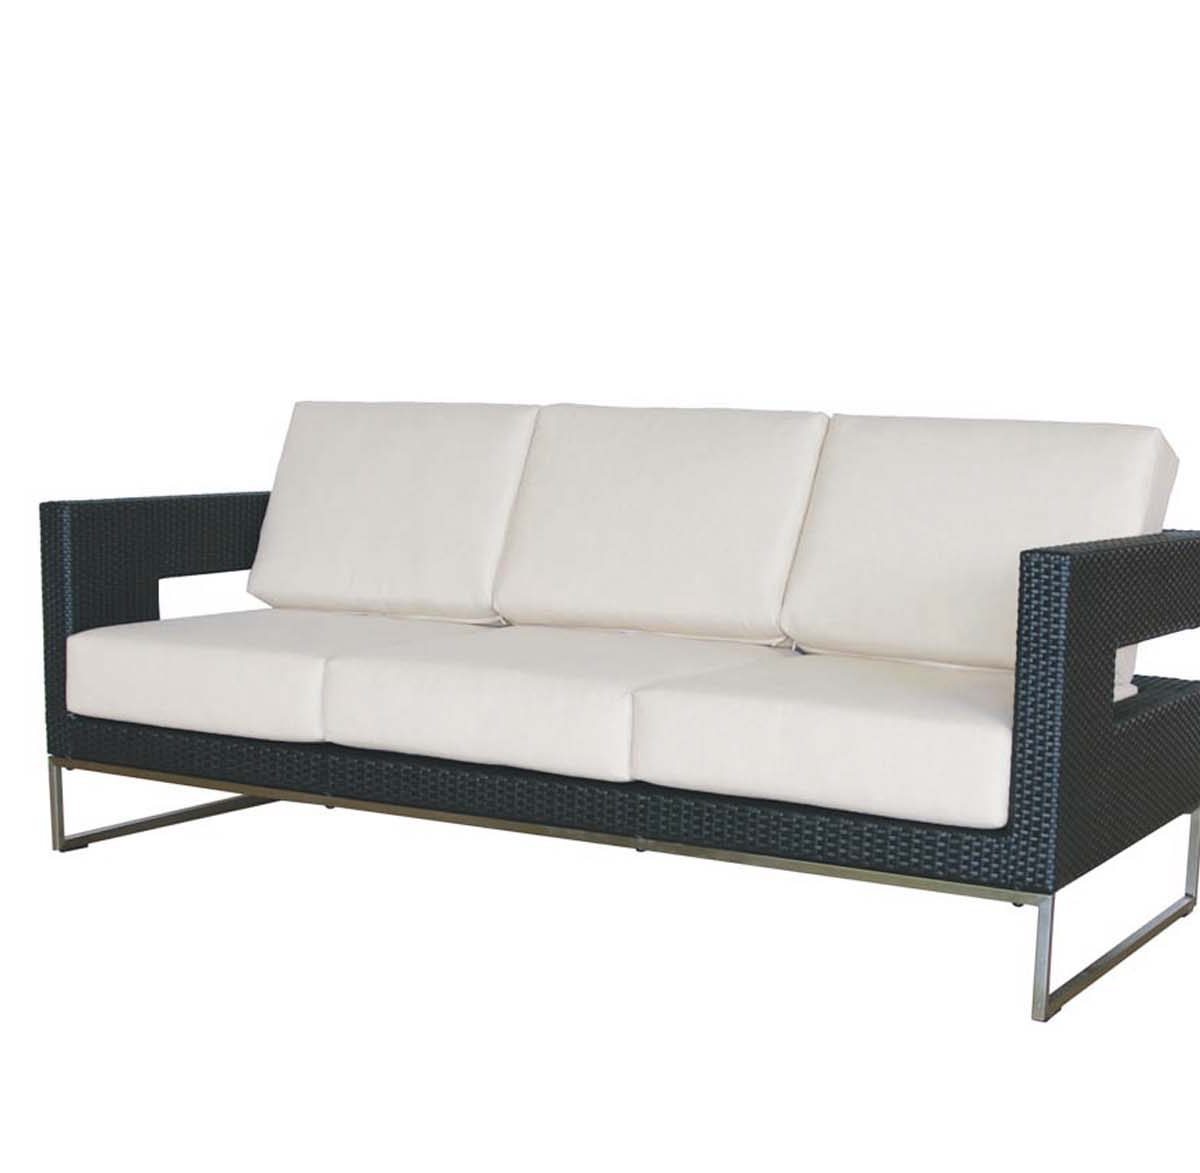 Vilano Sofa Ratana | Patio Bay